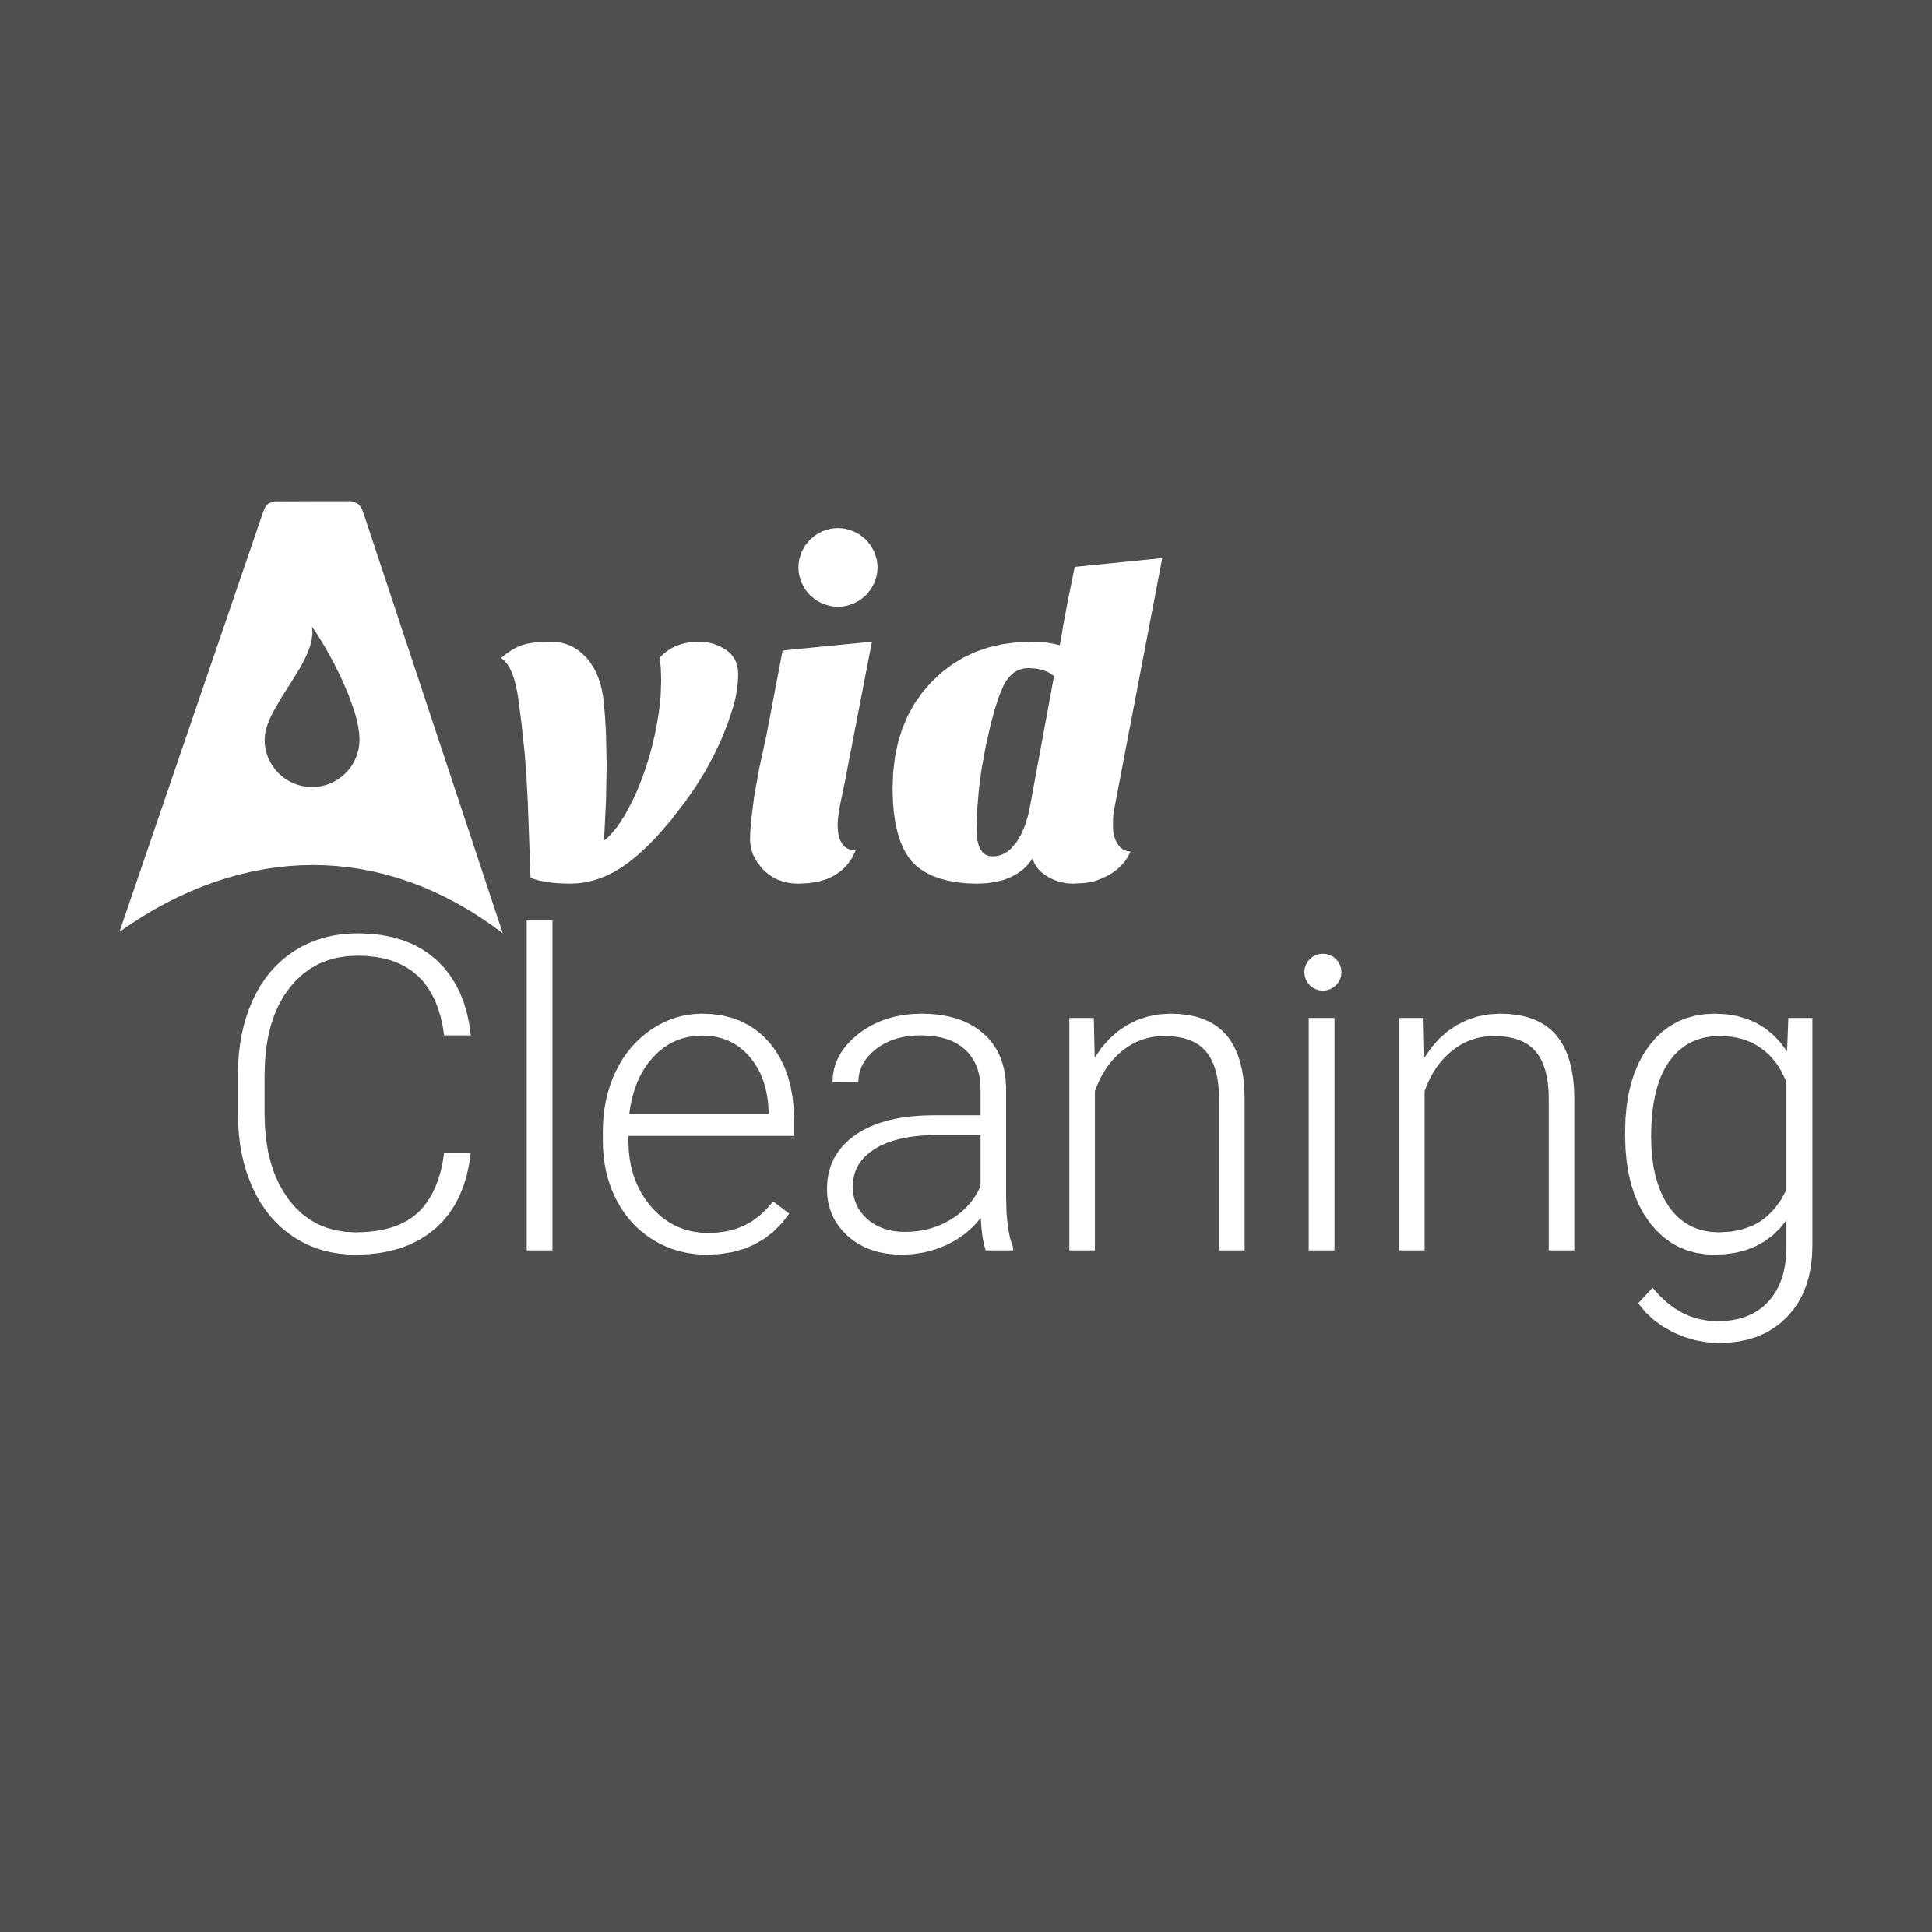 Avid Cleaning